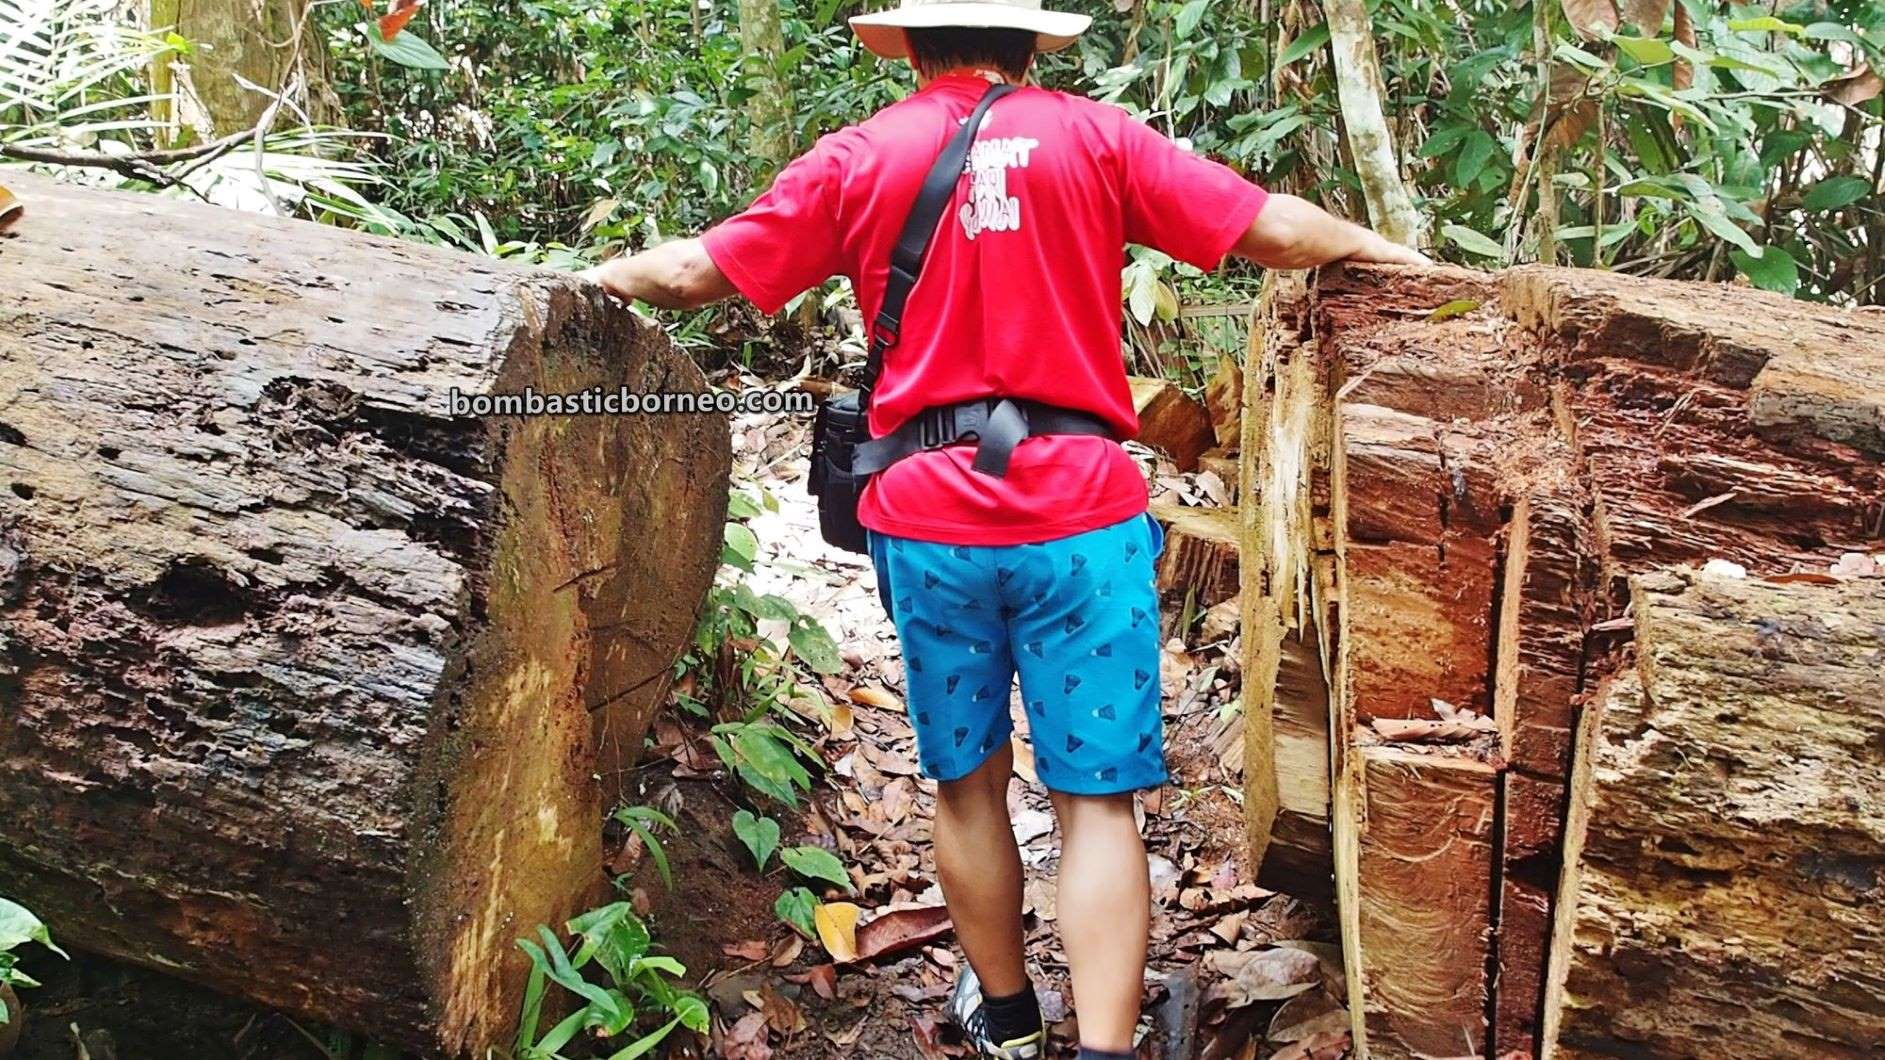 Pusat Sejadi Bukit Gemok, Gemok Hill Forest Reserve, hiking, exploration, conservation, backpackers, Hutan simpan, Malaysia, Tourism, tourist attraction, travel guide, Trans Borneo, 跨境婆罗洲游踪,马来西亚沙巴, 斗湖森林保护区,